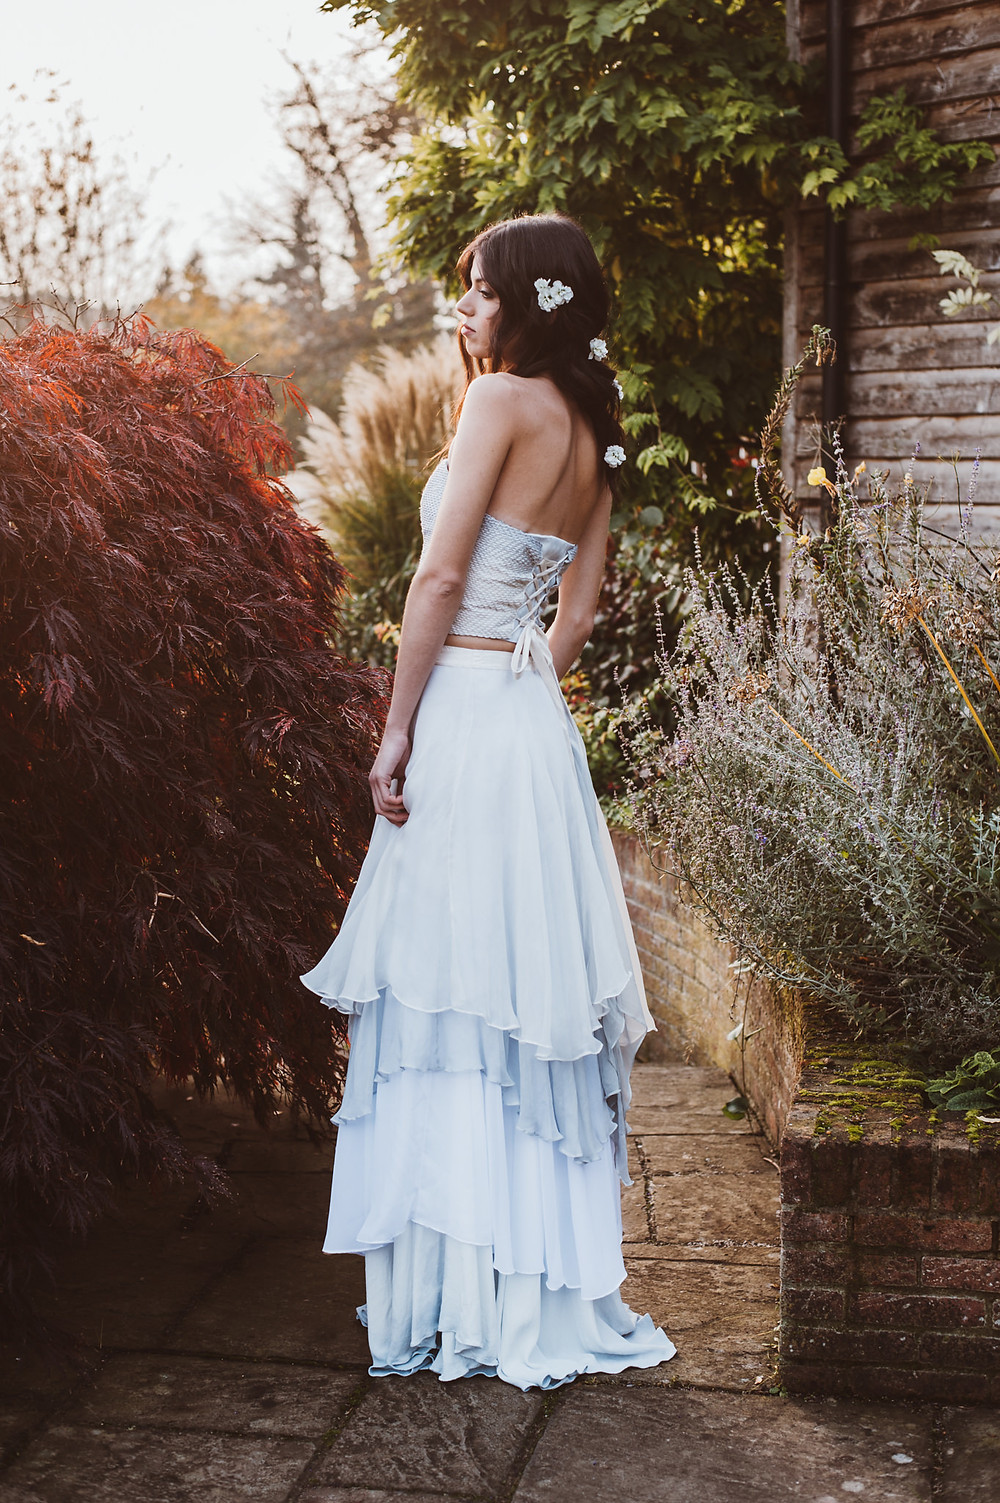 Dip dyed blue wedding dress by Jessica Turner Designs.